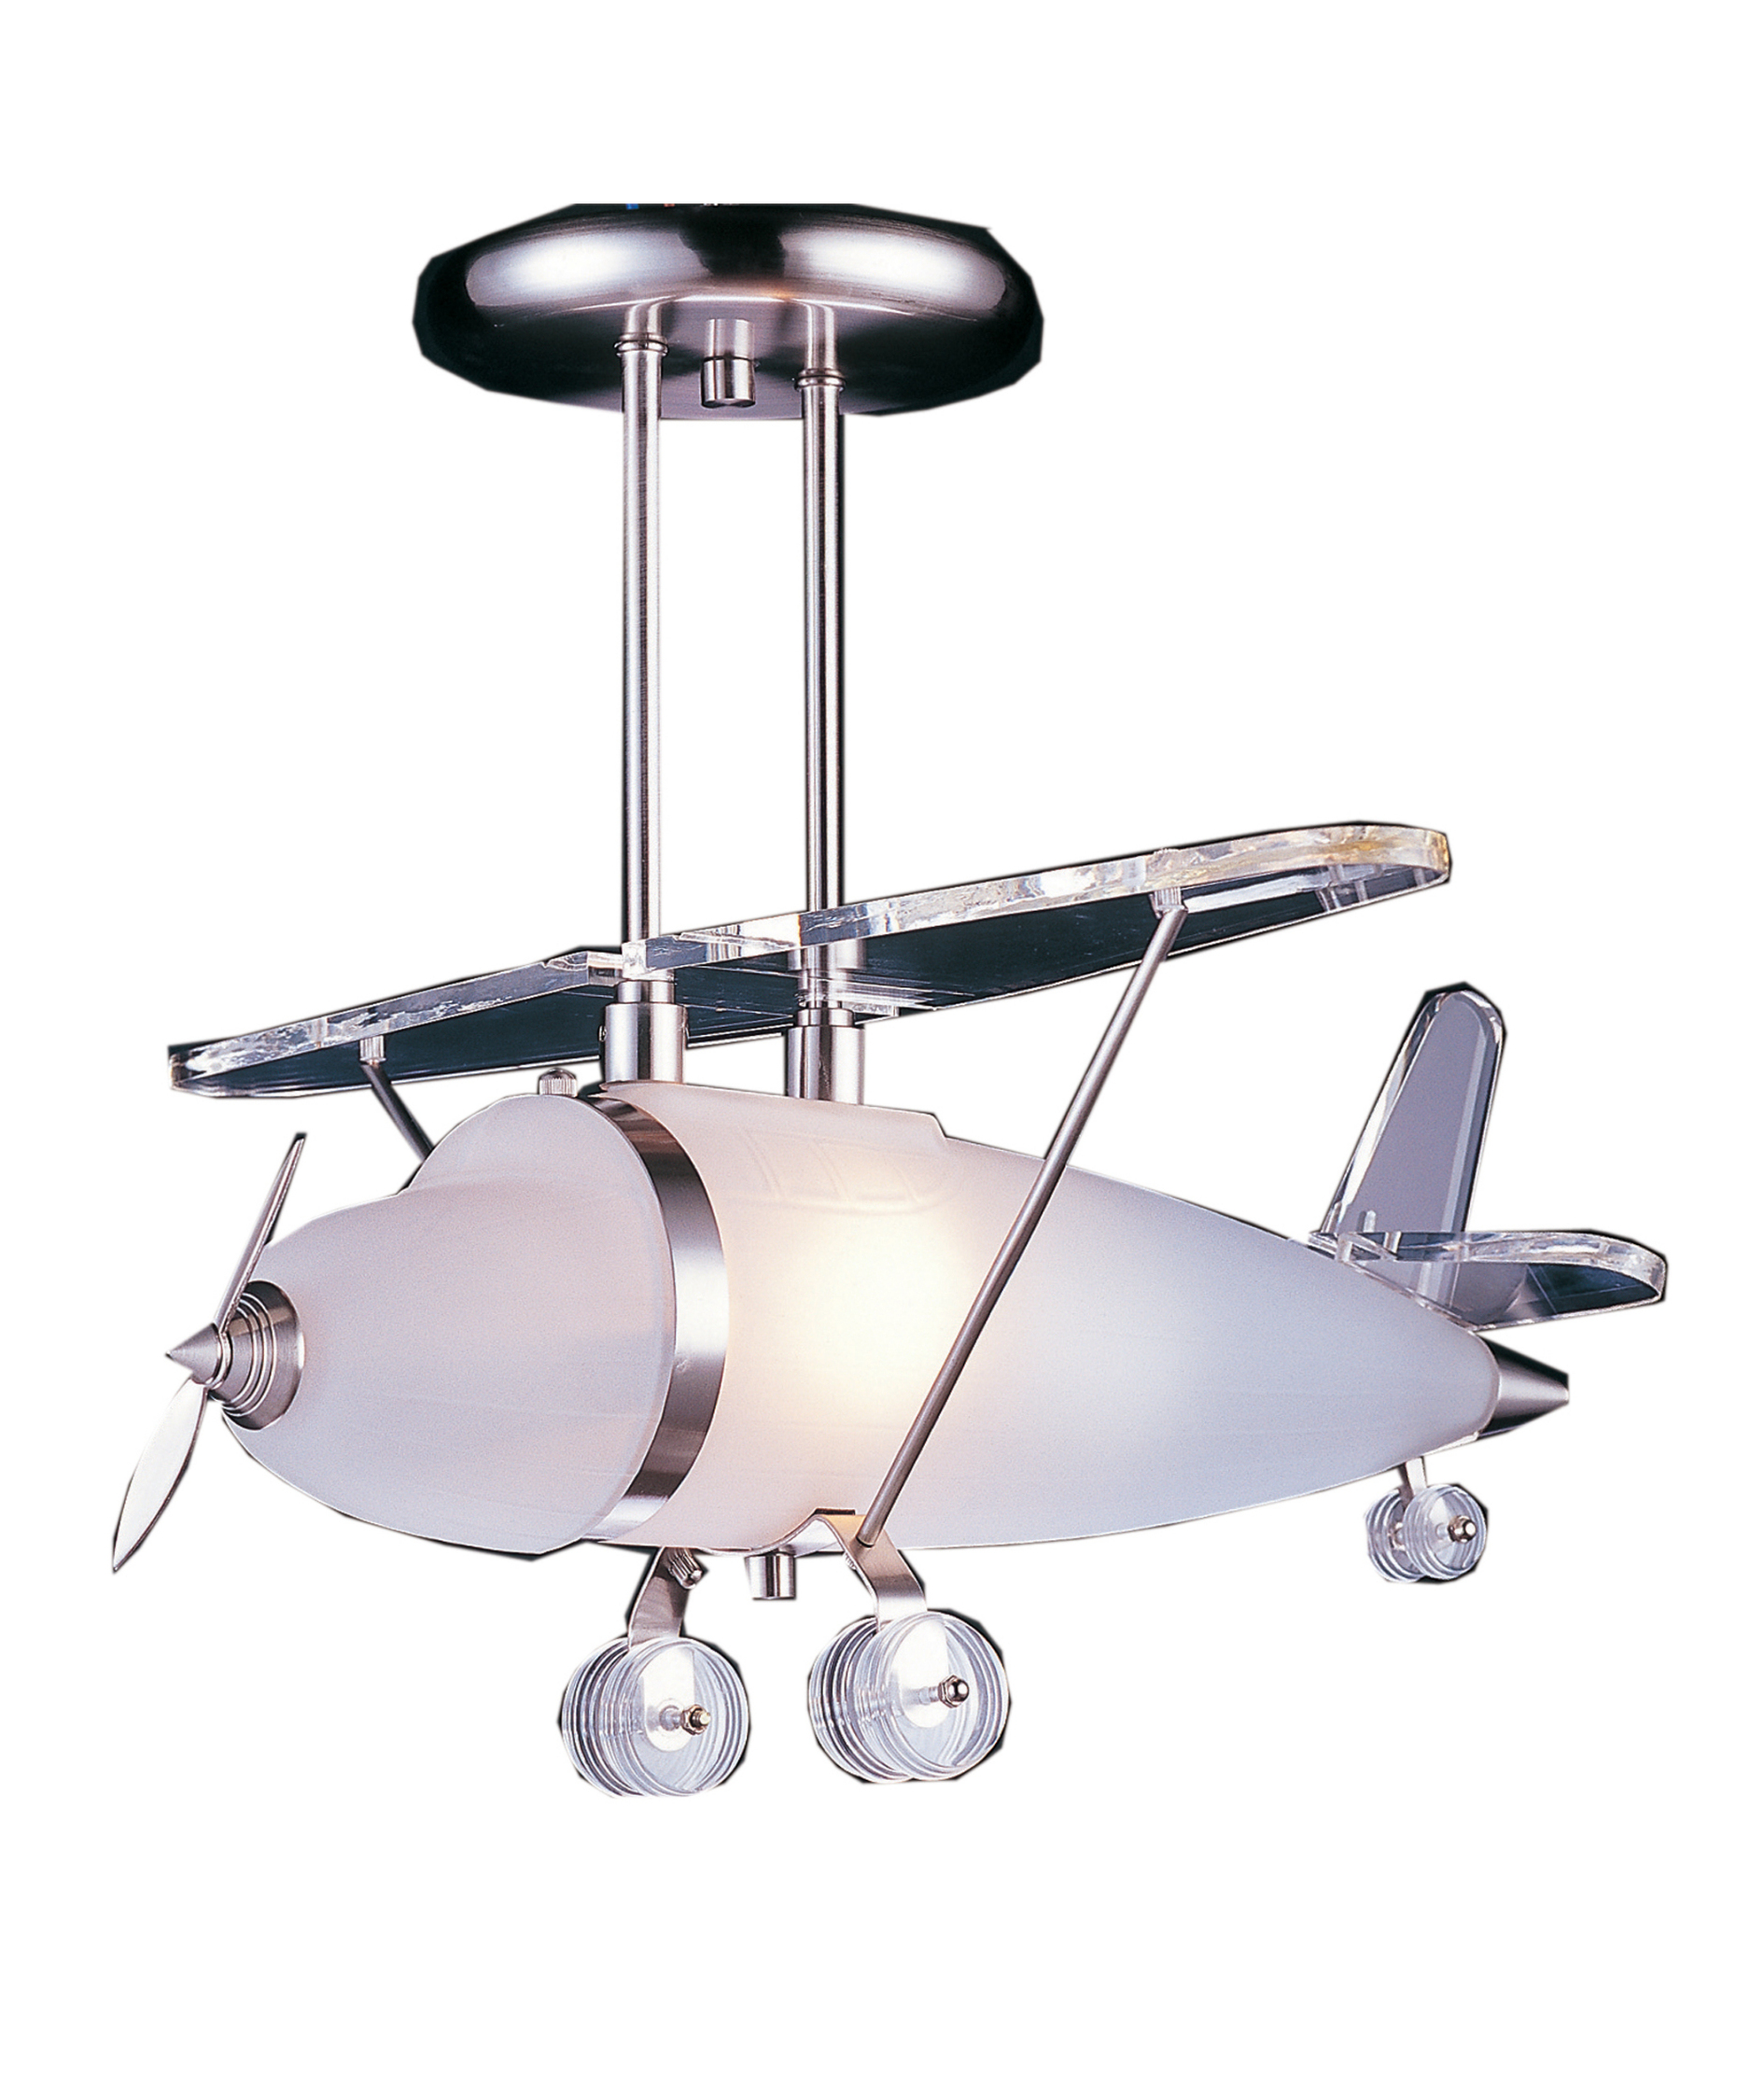 Airplane Theme Pendant Lamp With Stainless Steel Frame